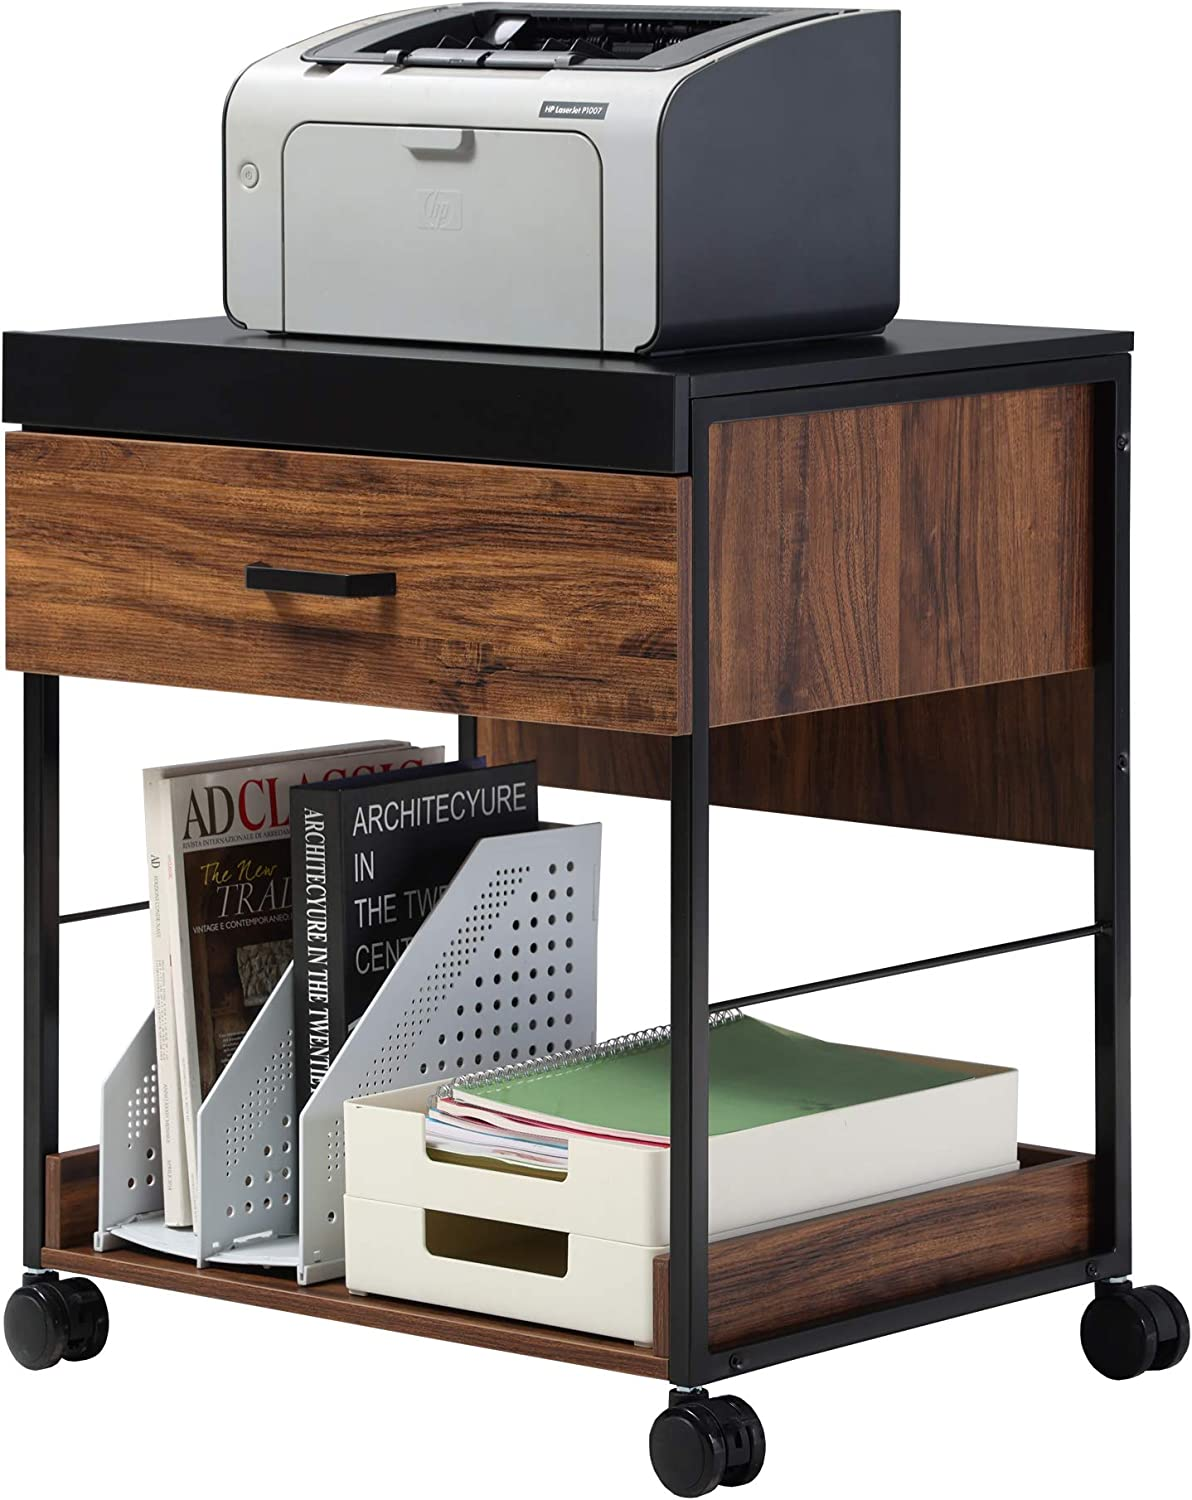 HOMOOI Mobile Tulsa Mall Filing Cabinet New product type Printer Drawe Wheels Stand with on